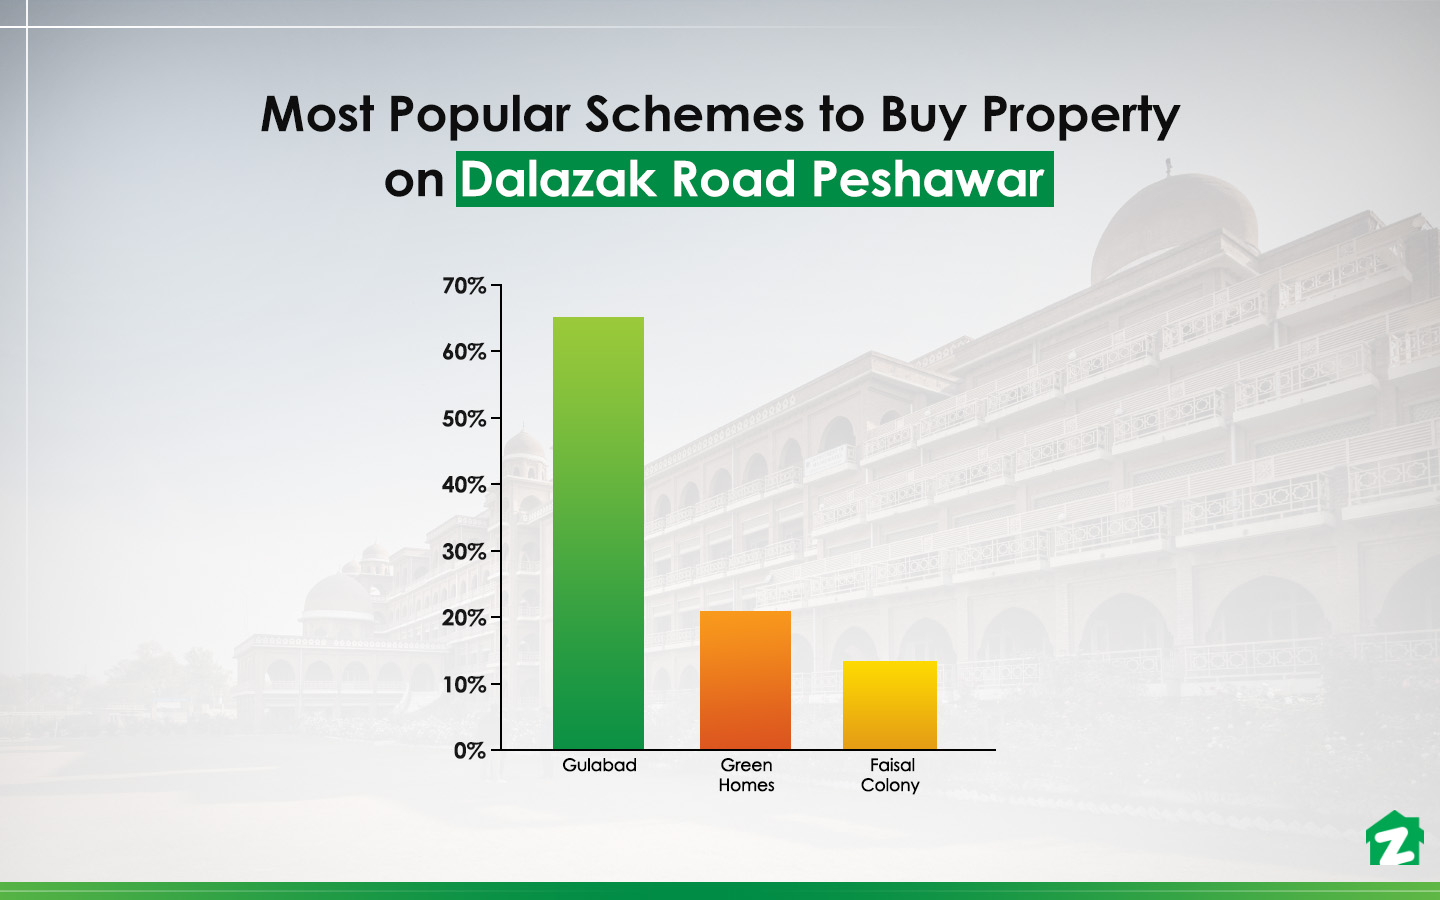 Top areas for buying properties on Dalazak Road Peshawar